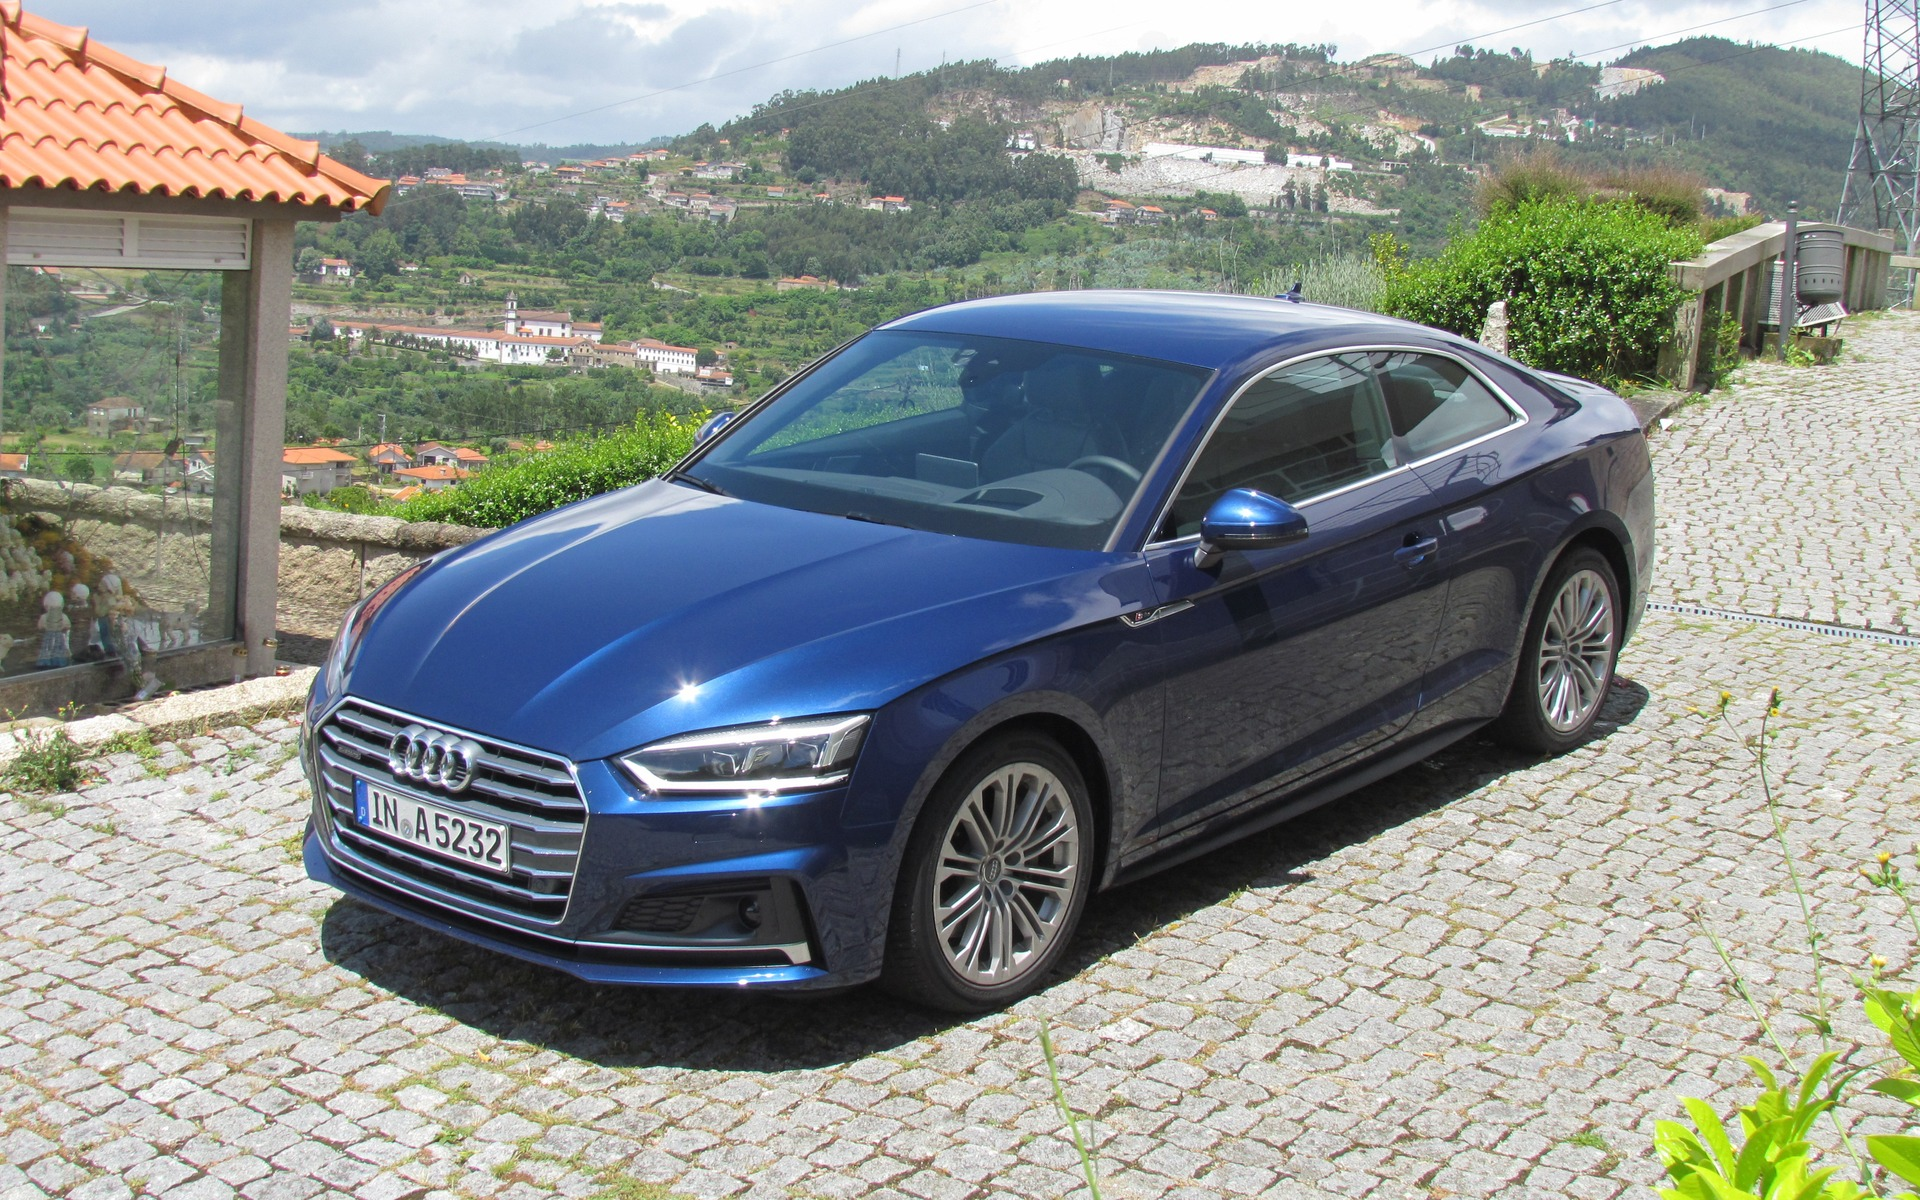 2018 audi a5 and s5 sharper sleeker faster the car guide. Black Bedroom Furniture Sets. Home Design Ideas